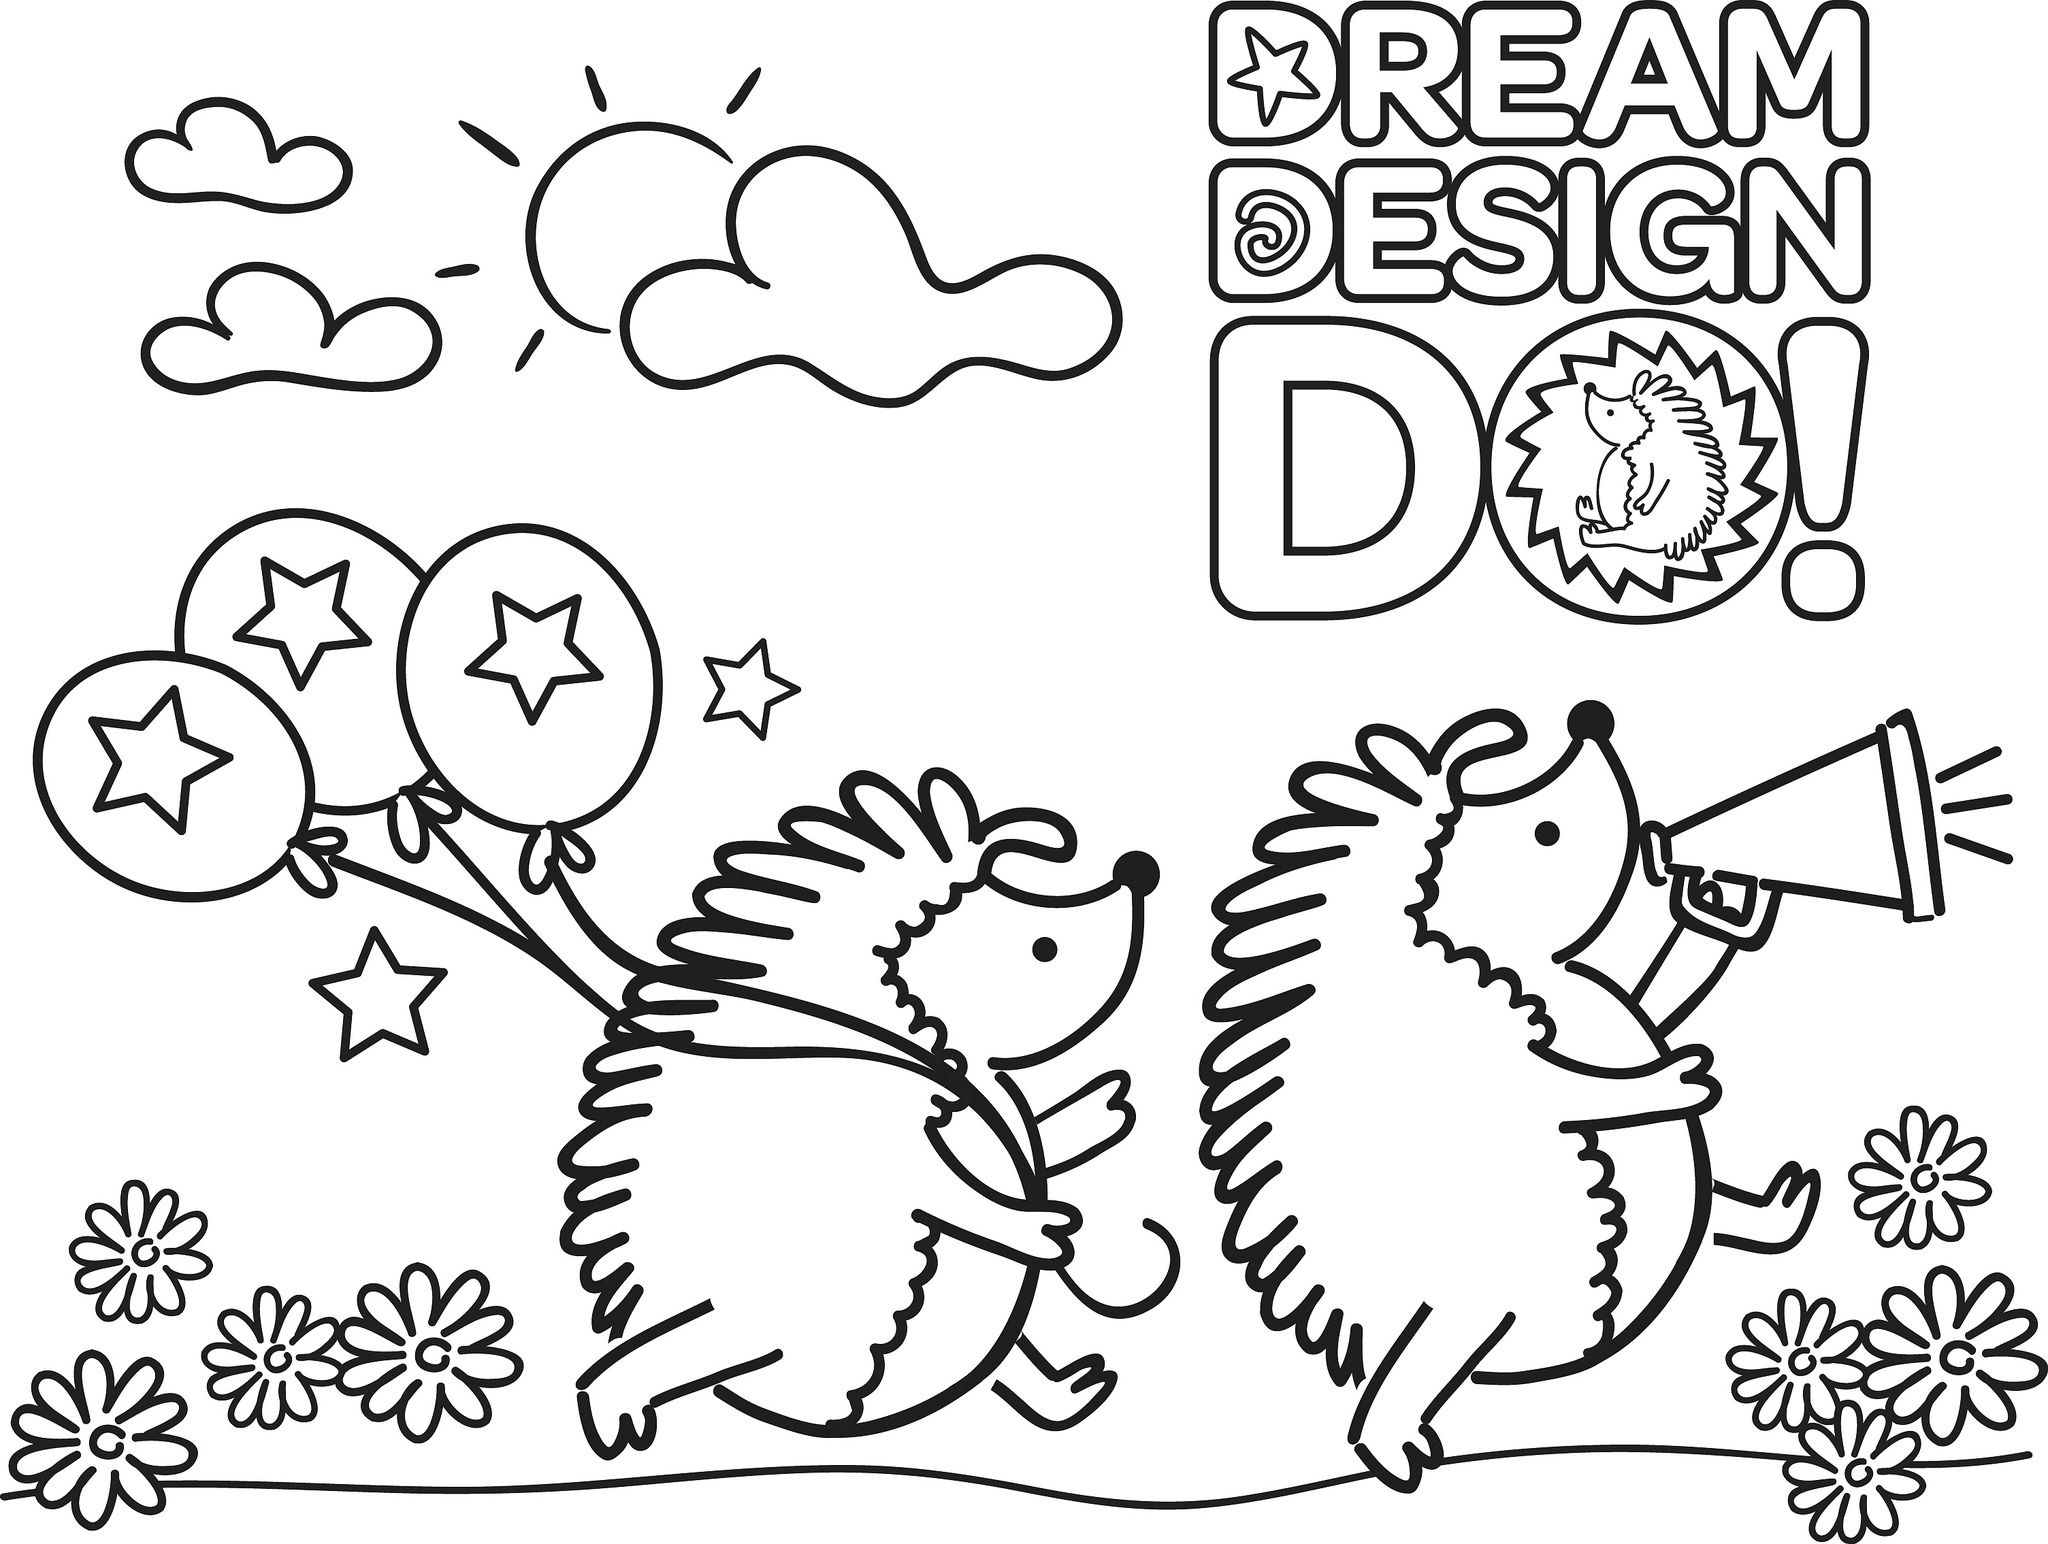 ABC Baker cookie coloring sheet